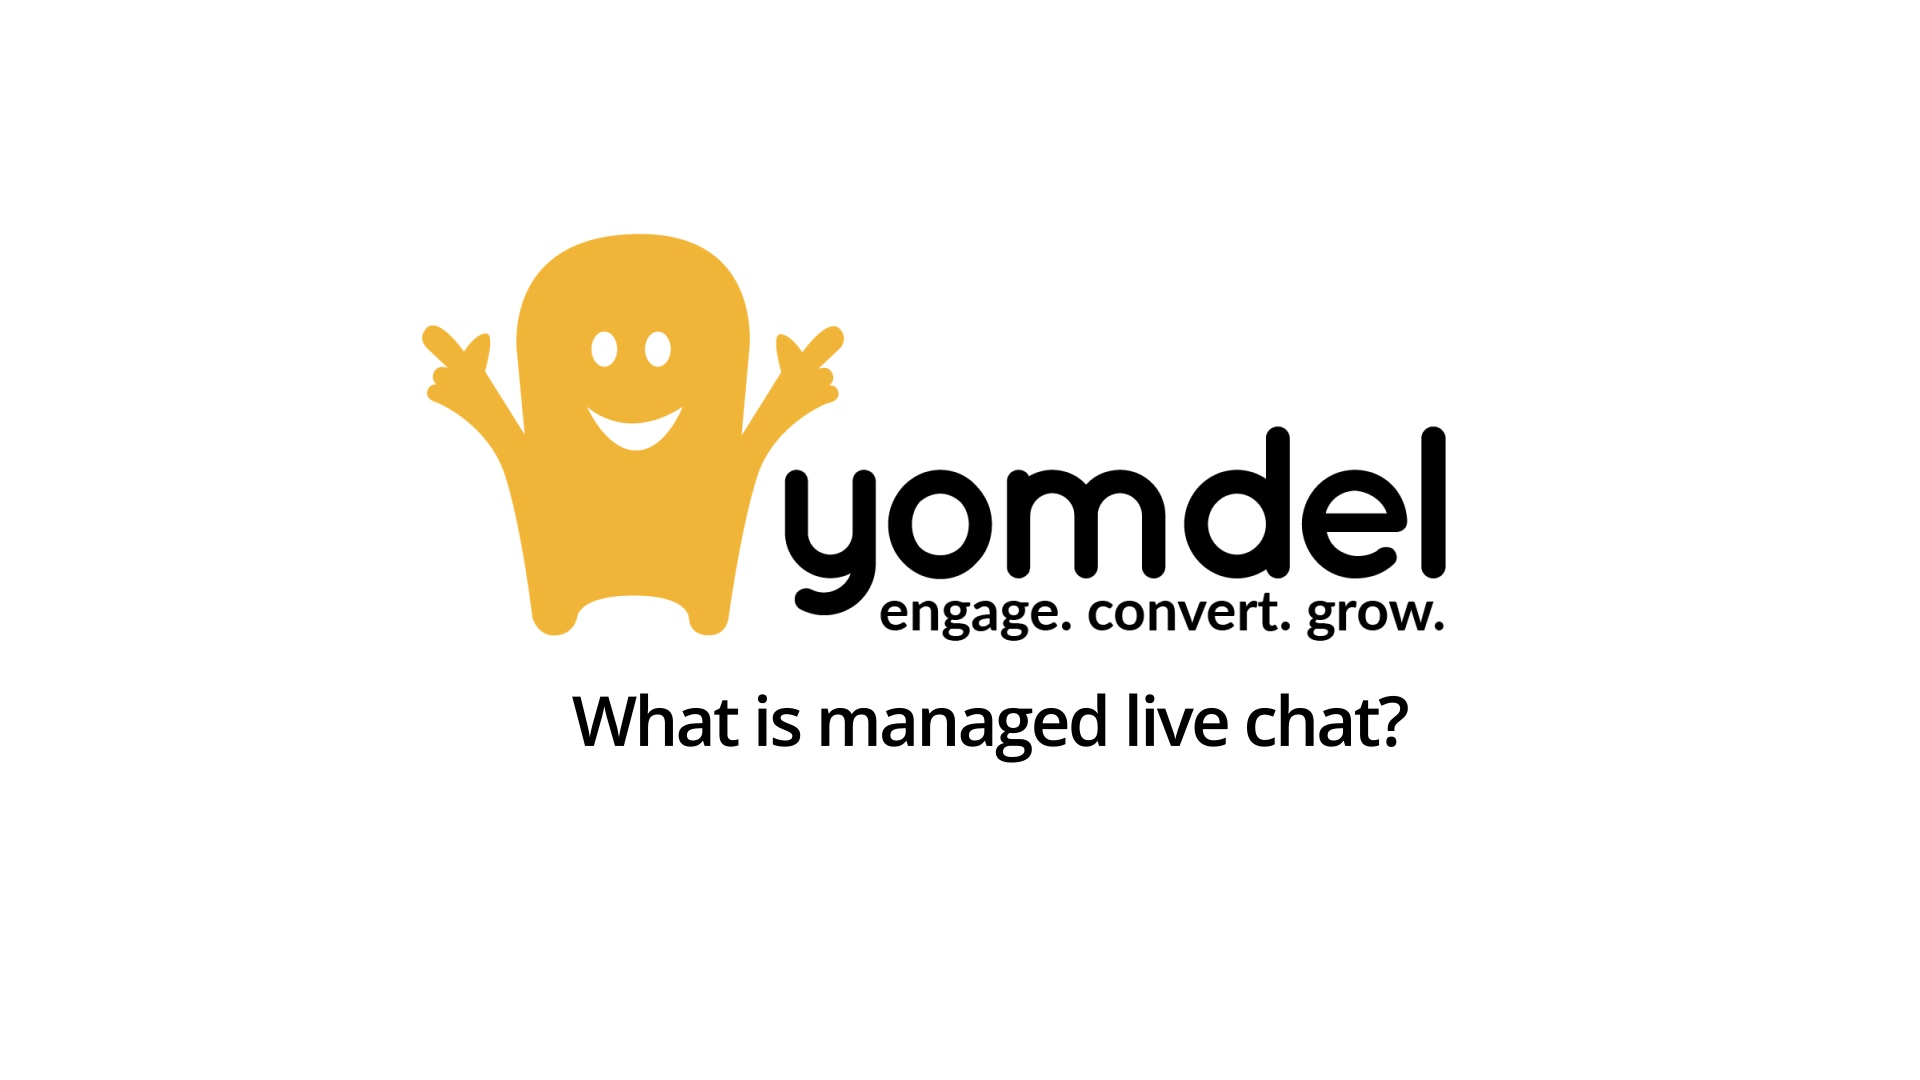 What is Yomdel Live Chat - FINAL